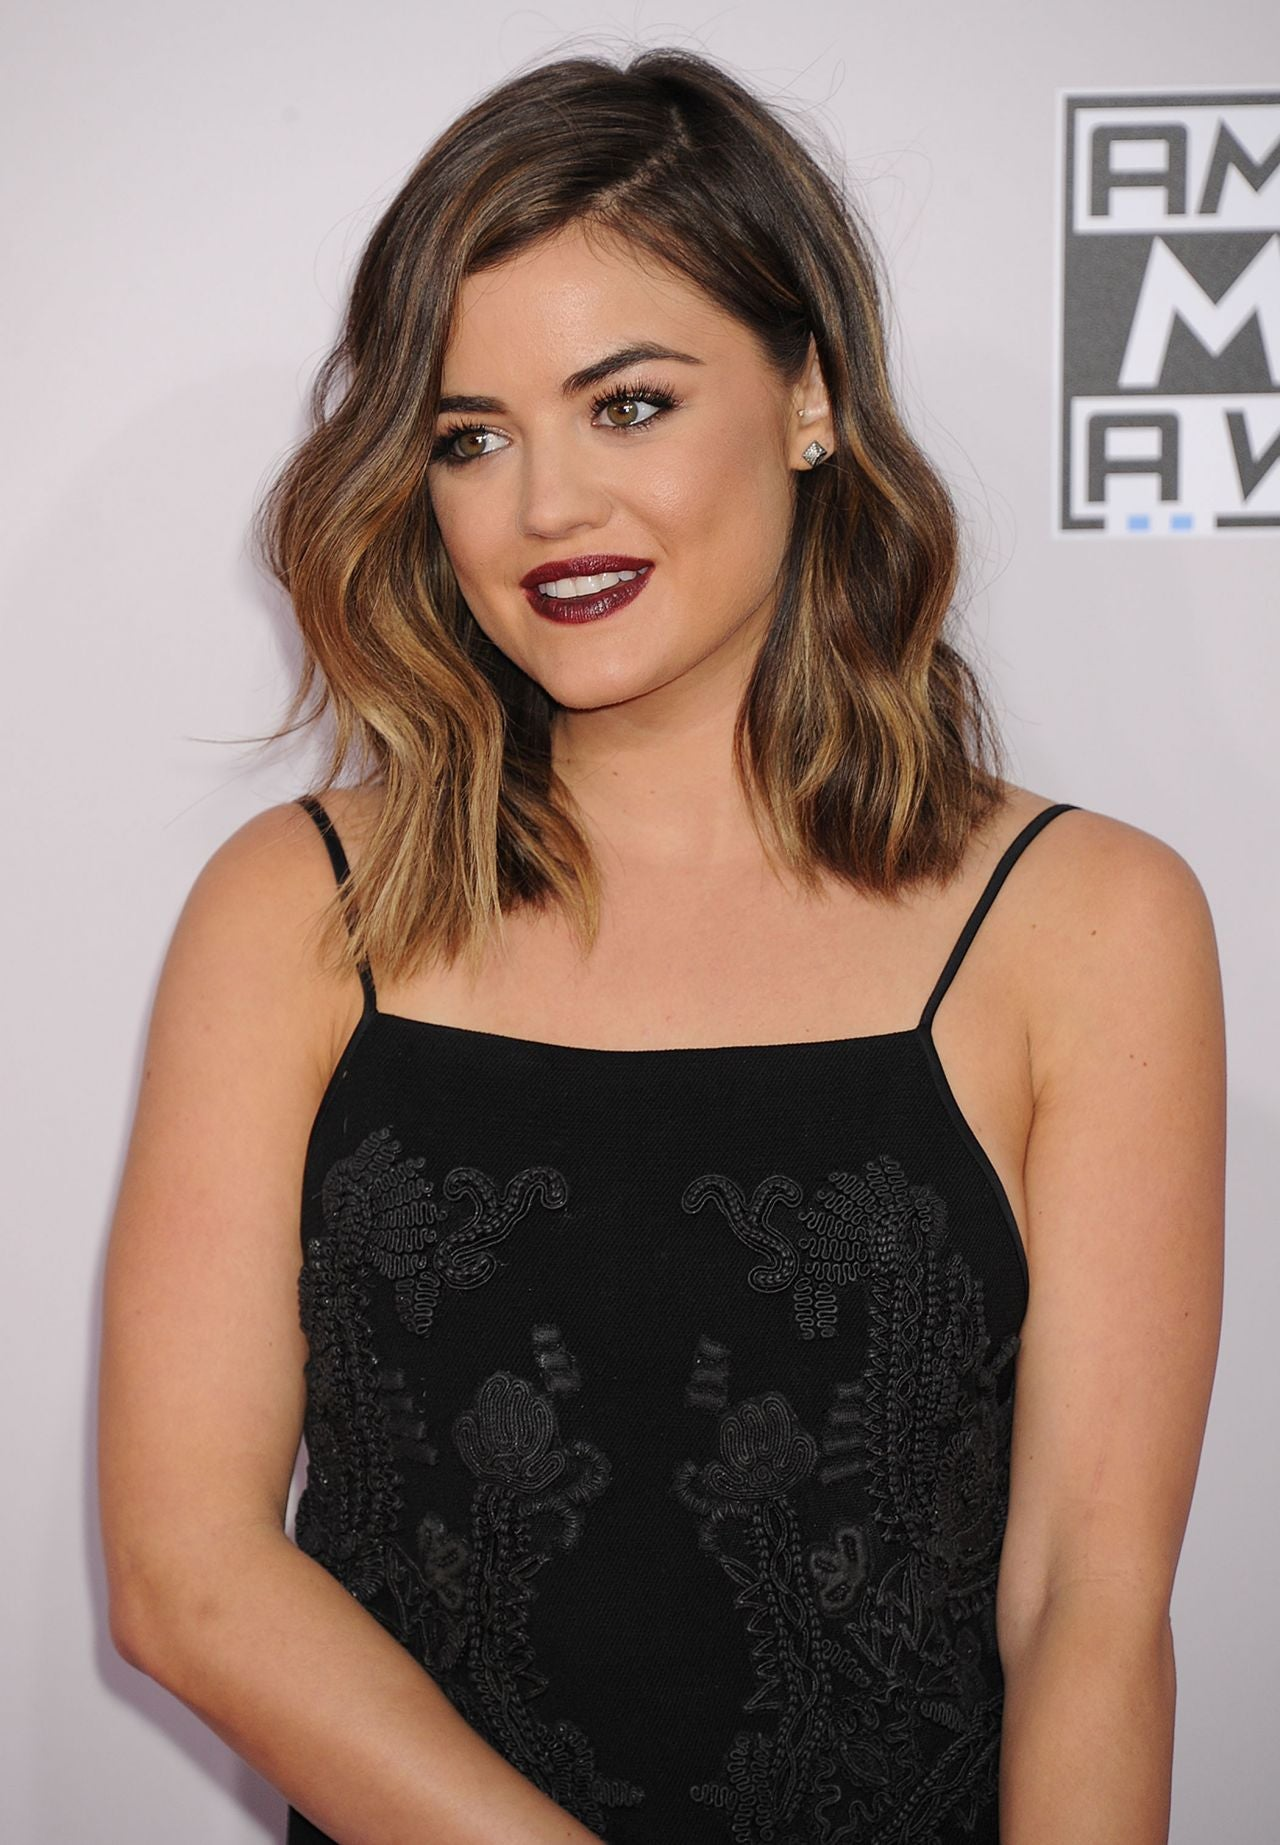 lucy hale run this town скачатьlucy hale make you believe, lucy hale instagram, lucy hale песни, lucy hale run this town, lucy hale extra ordinary, lucy hale gif, lucy hale bless myself, lucy hale vk, lucy hale hair, lucy hale run this town скачать, lucy hale рост, lucy hale биография, lucy hale blonde, lucy hale gallery, lucy hale site, lucy hale gif hunt, lucy hale wikipedia, lucy hale песни скачать, lucy hale movies, lucy hale songs